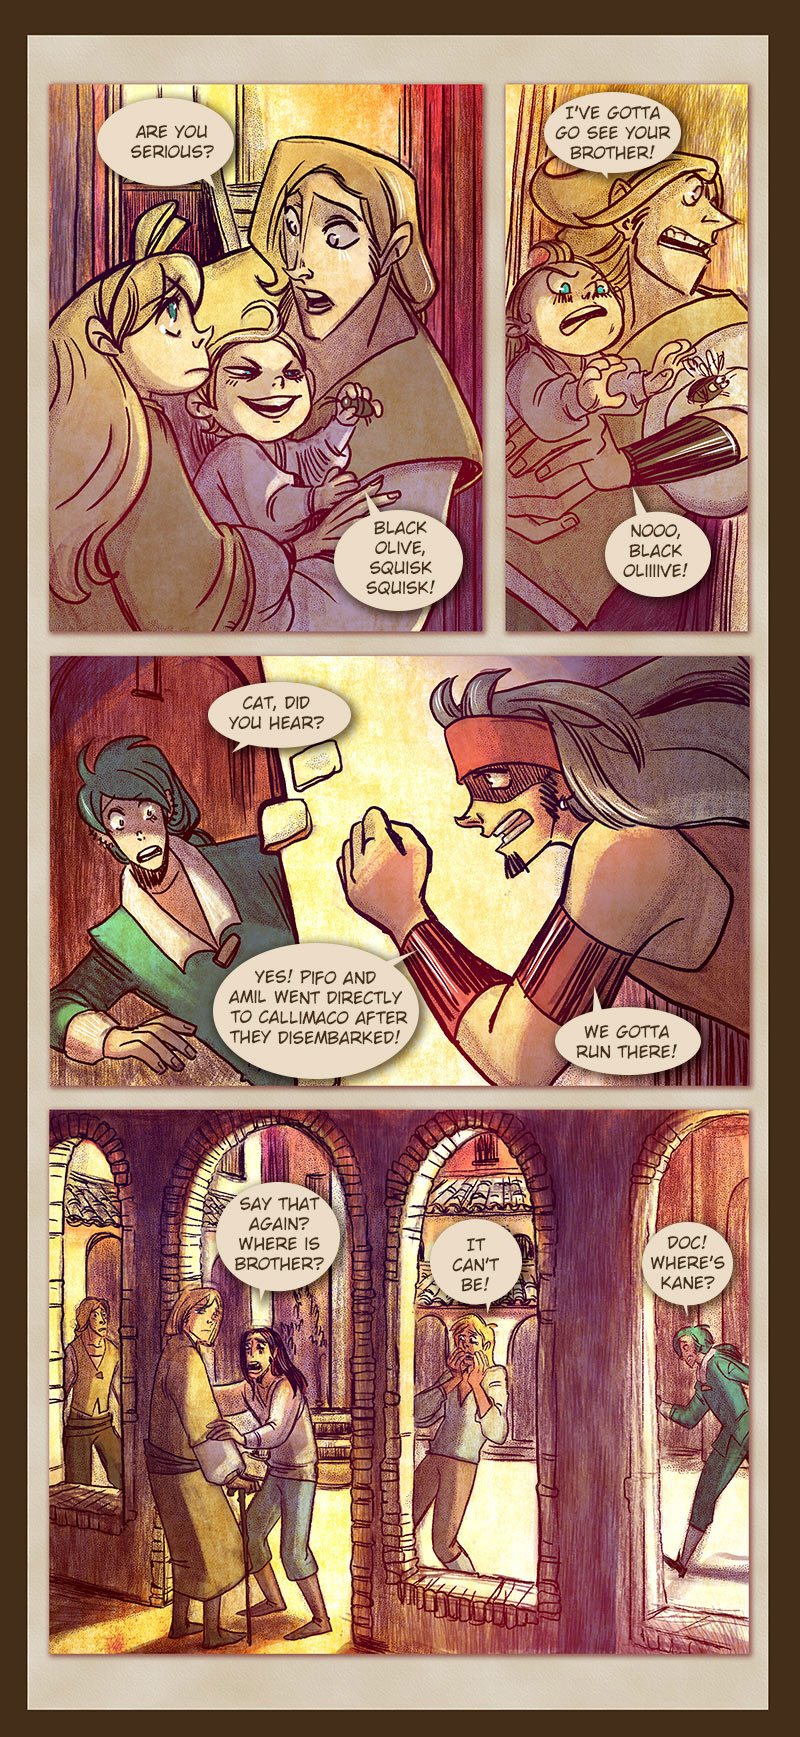 TGMS - Chapter 7 - page 5